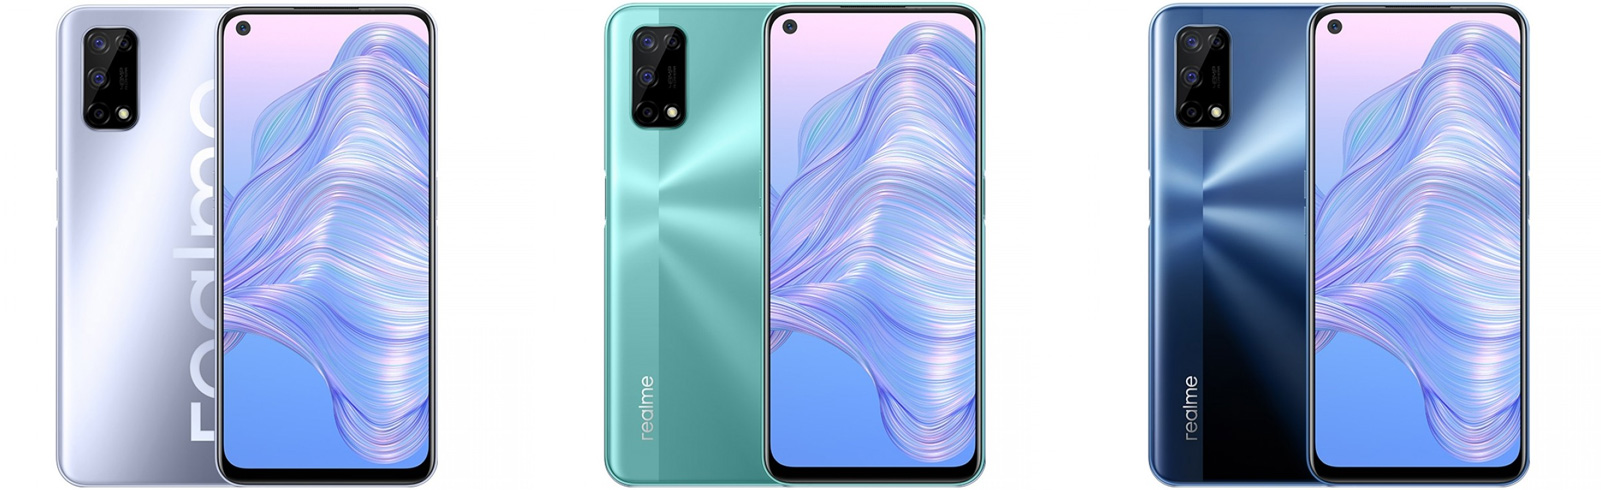 Realme V5 and Vivo S7 will be launched on August 3rd